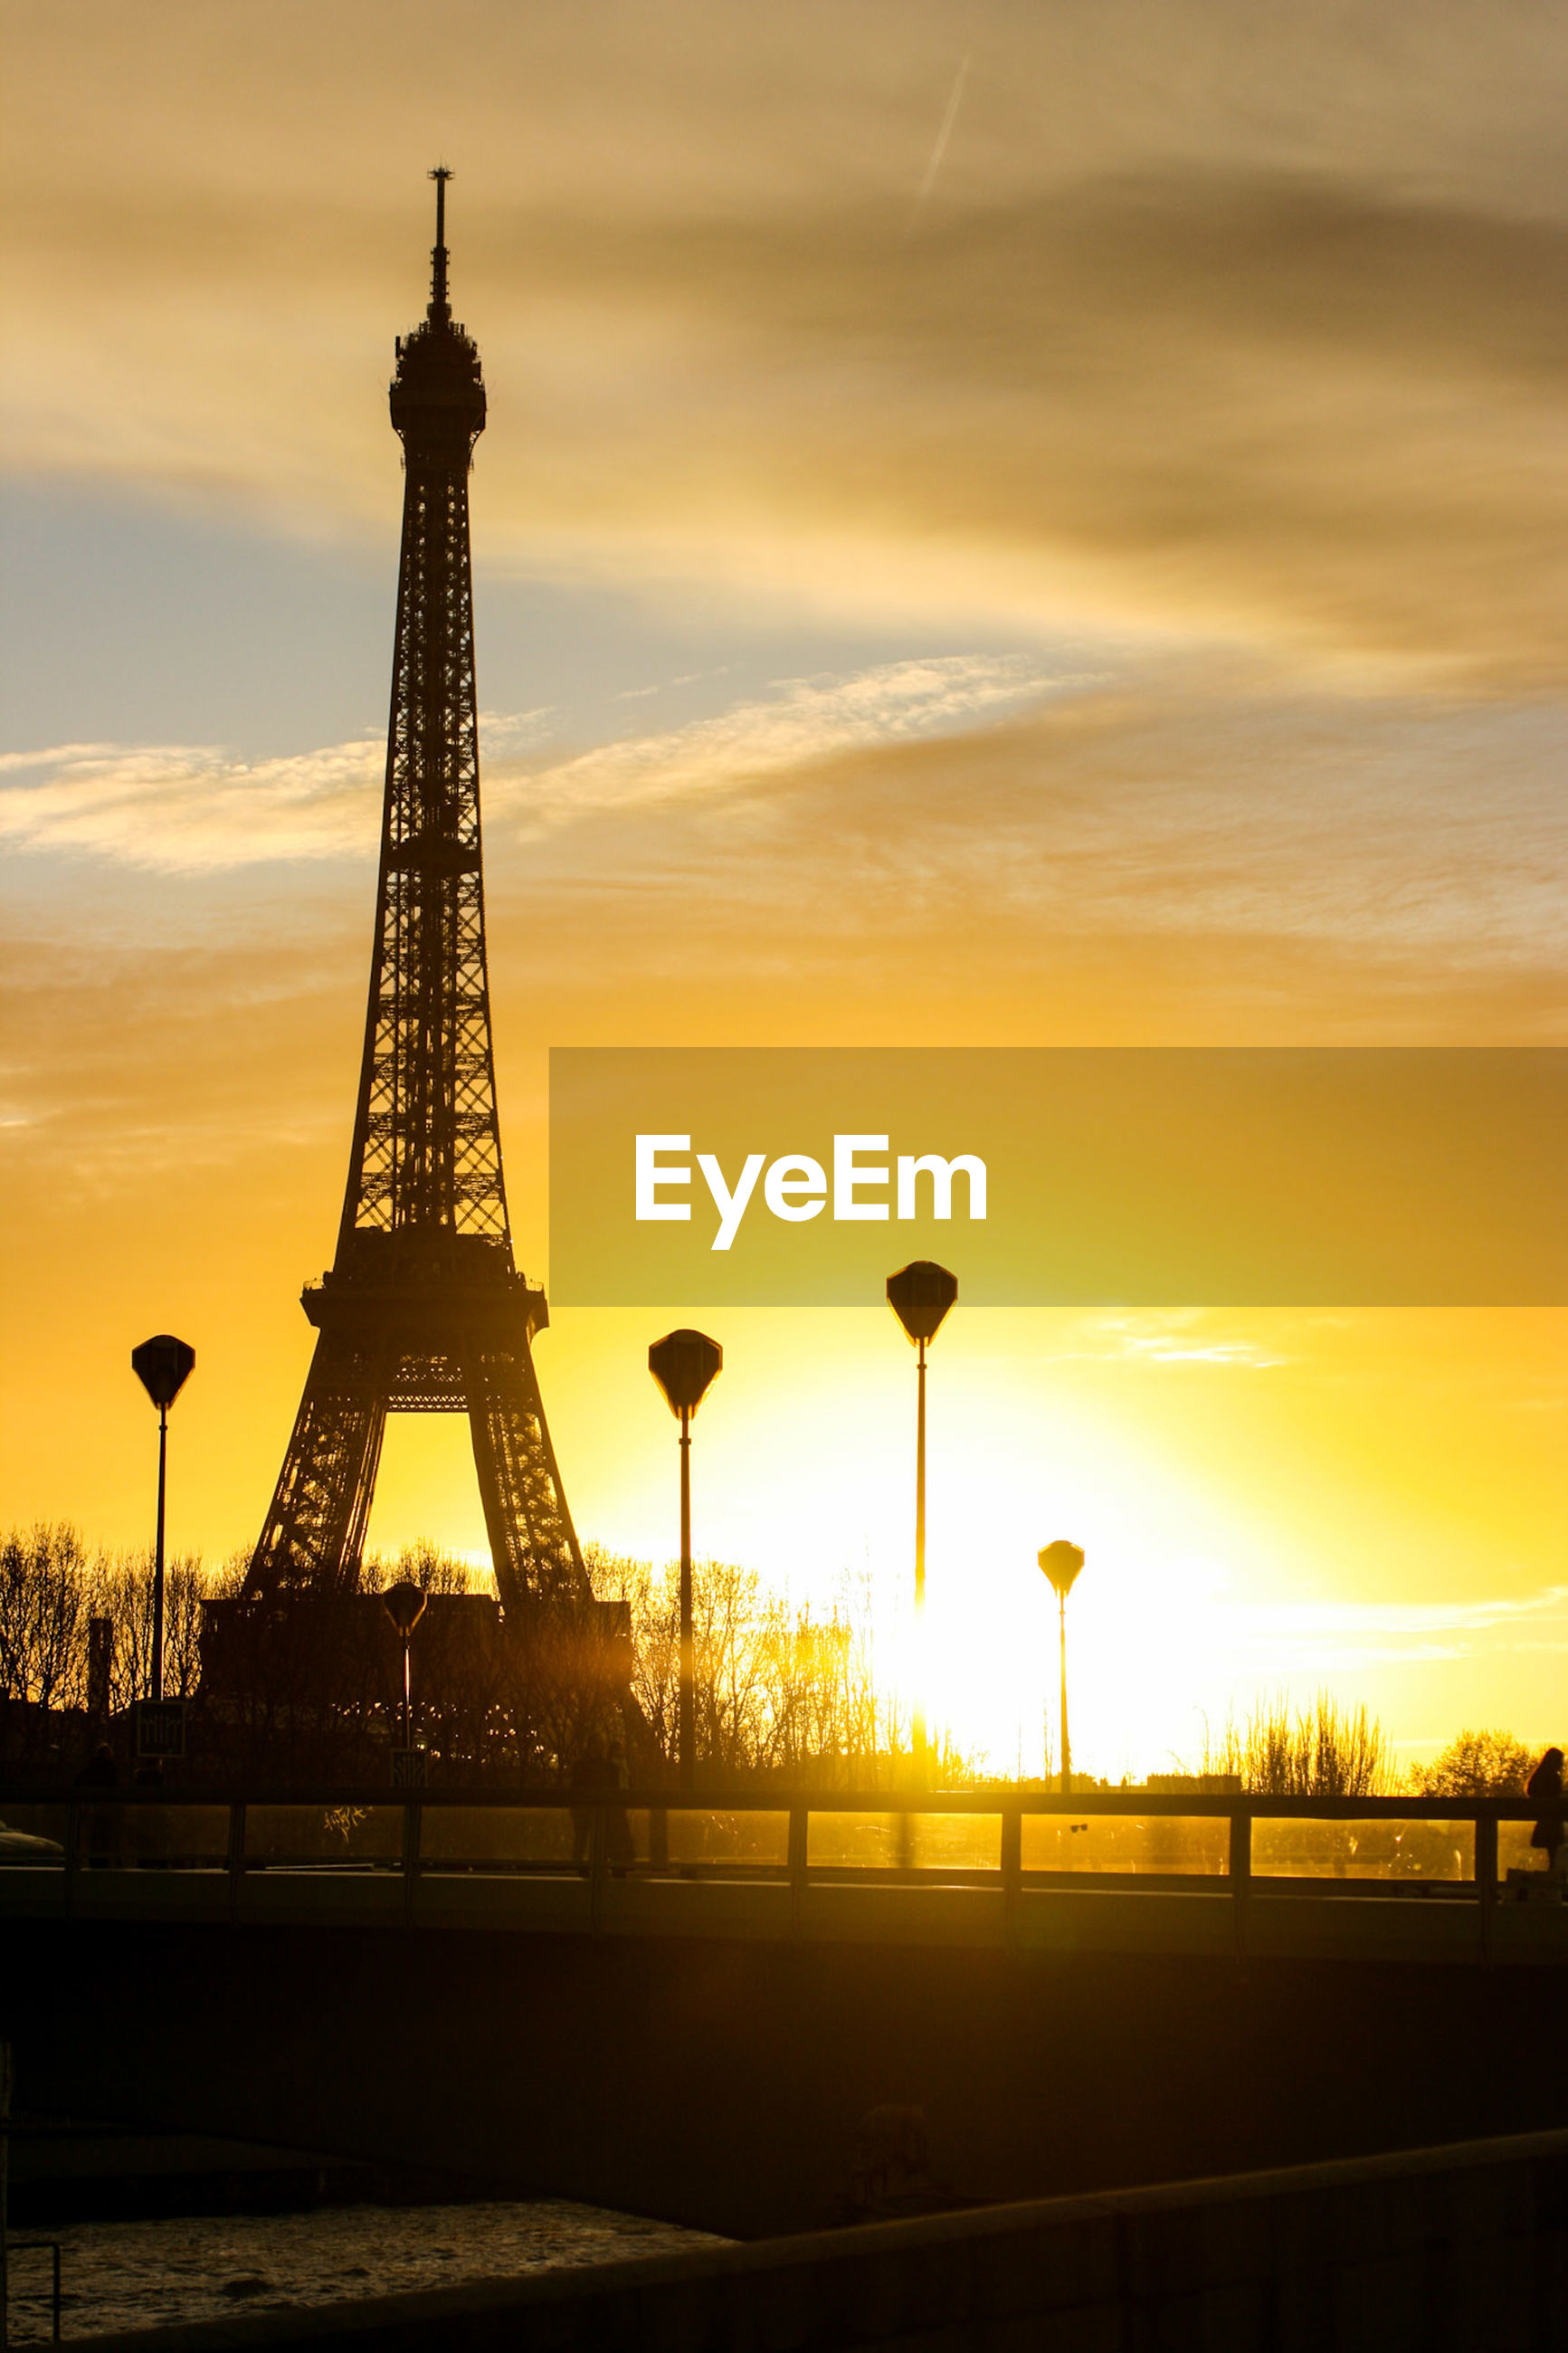 Silhouette eiffel tower against cloudy sky during sunset